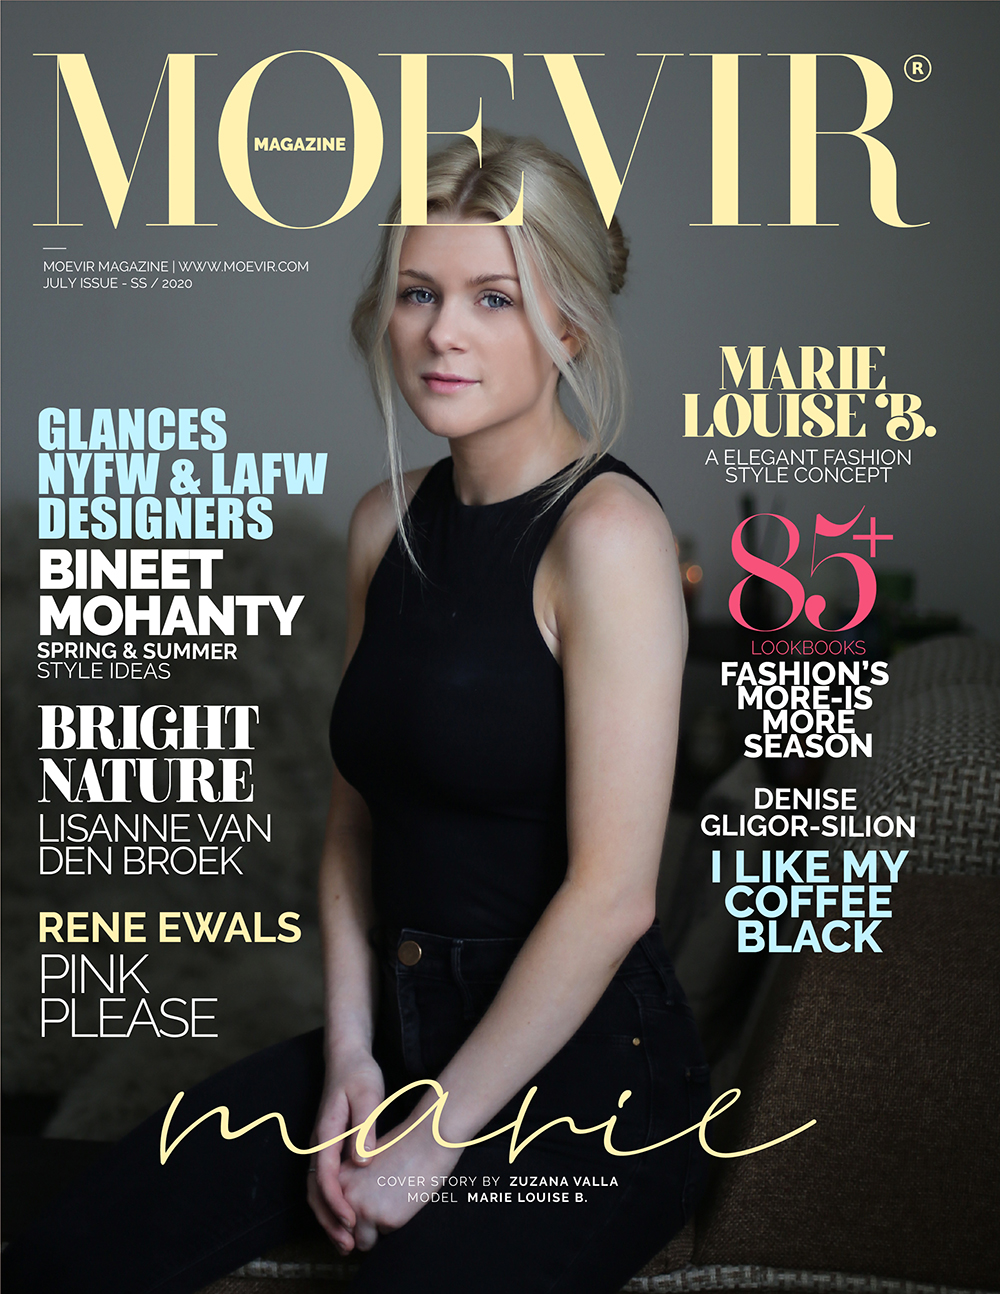 Moevir Magazine July Issue